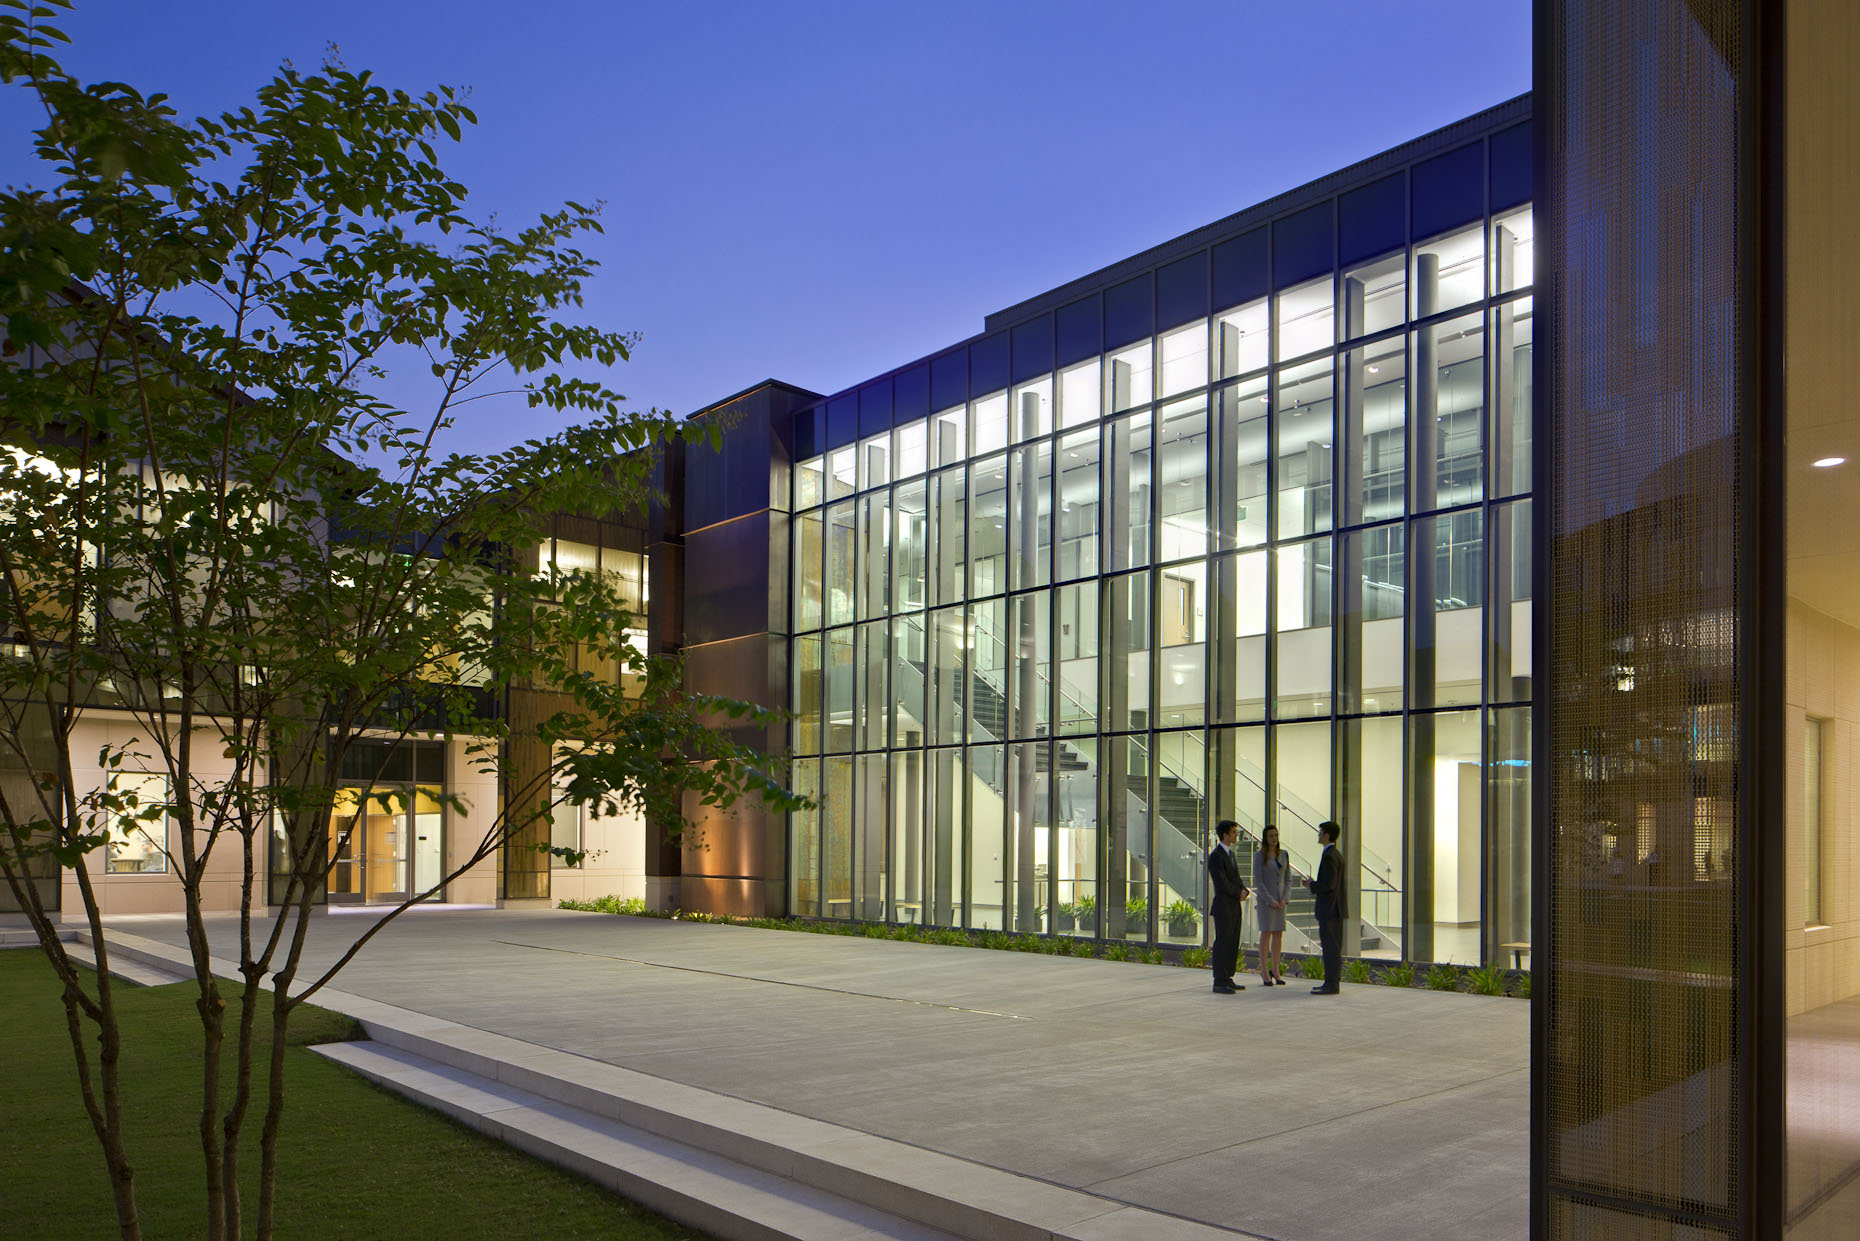 E.J. Ourso College of Business at Louisiana State University by Ikon.5 Architects photographed by Brad Feinknopf based in Columbus, Ohio